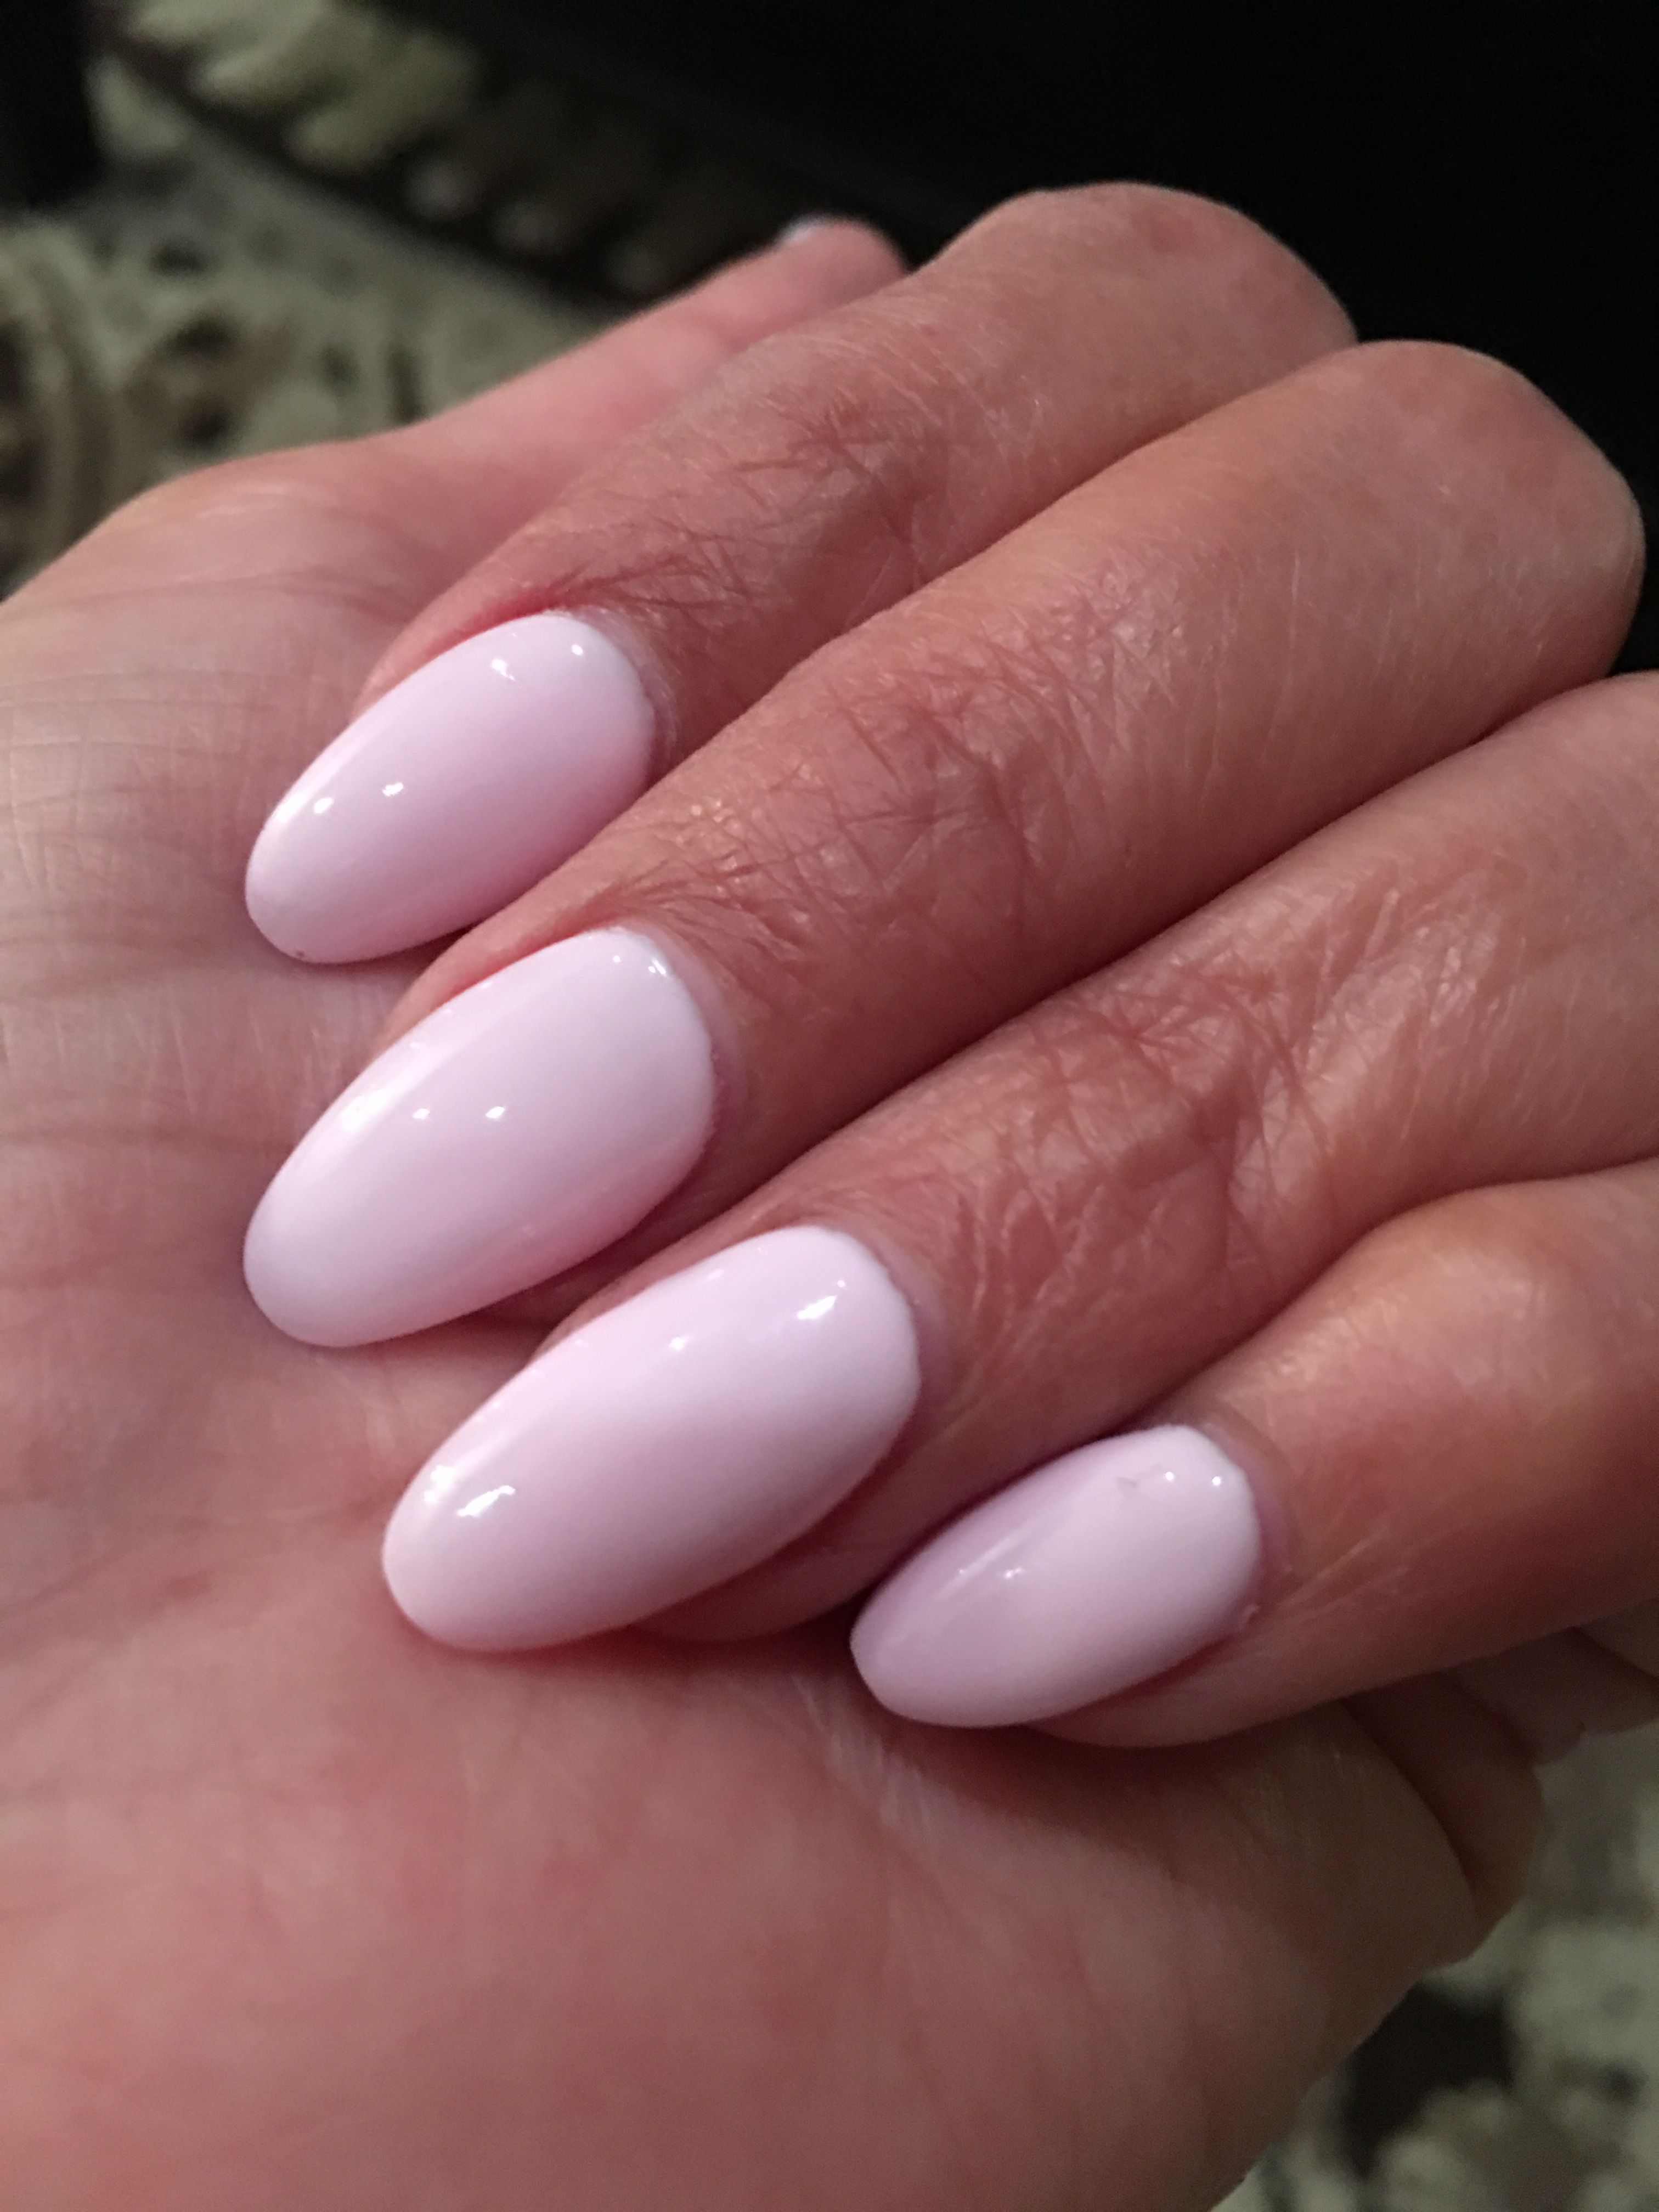 Pink And White Almond Shaped L P Nails French Nails Nail Shapes French Tip Nails